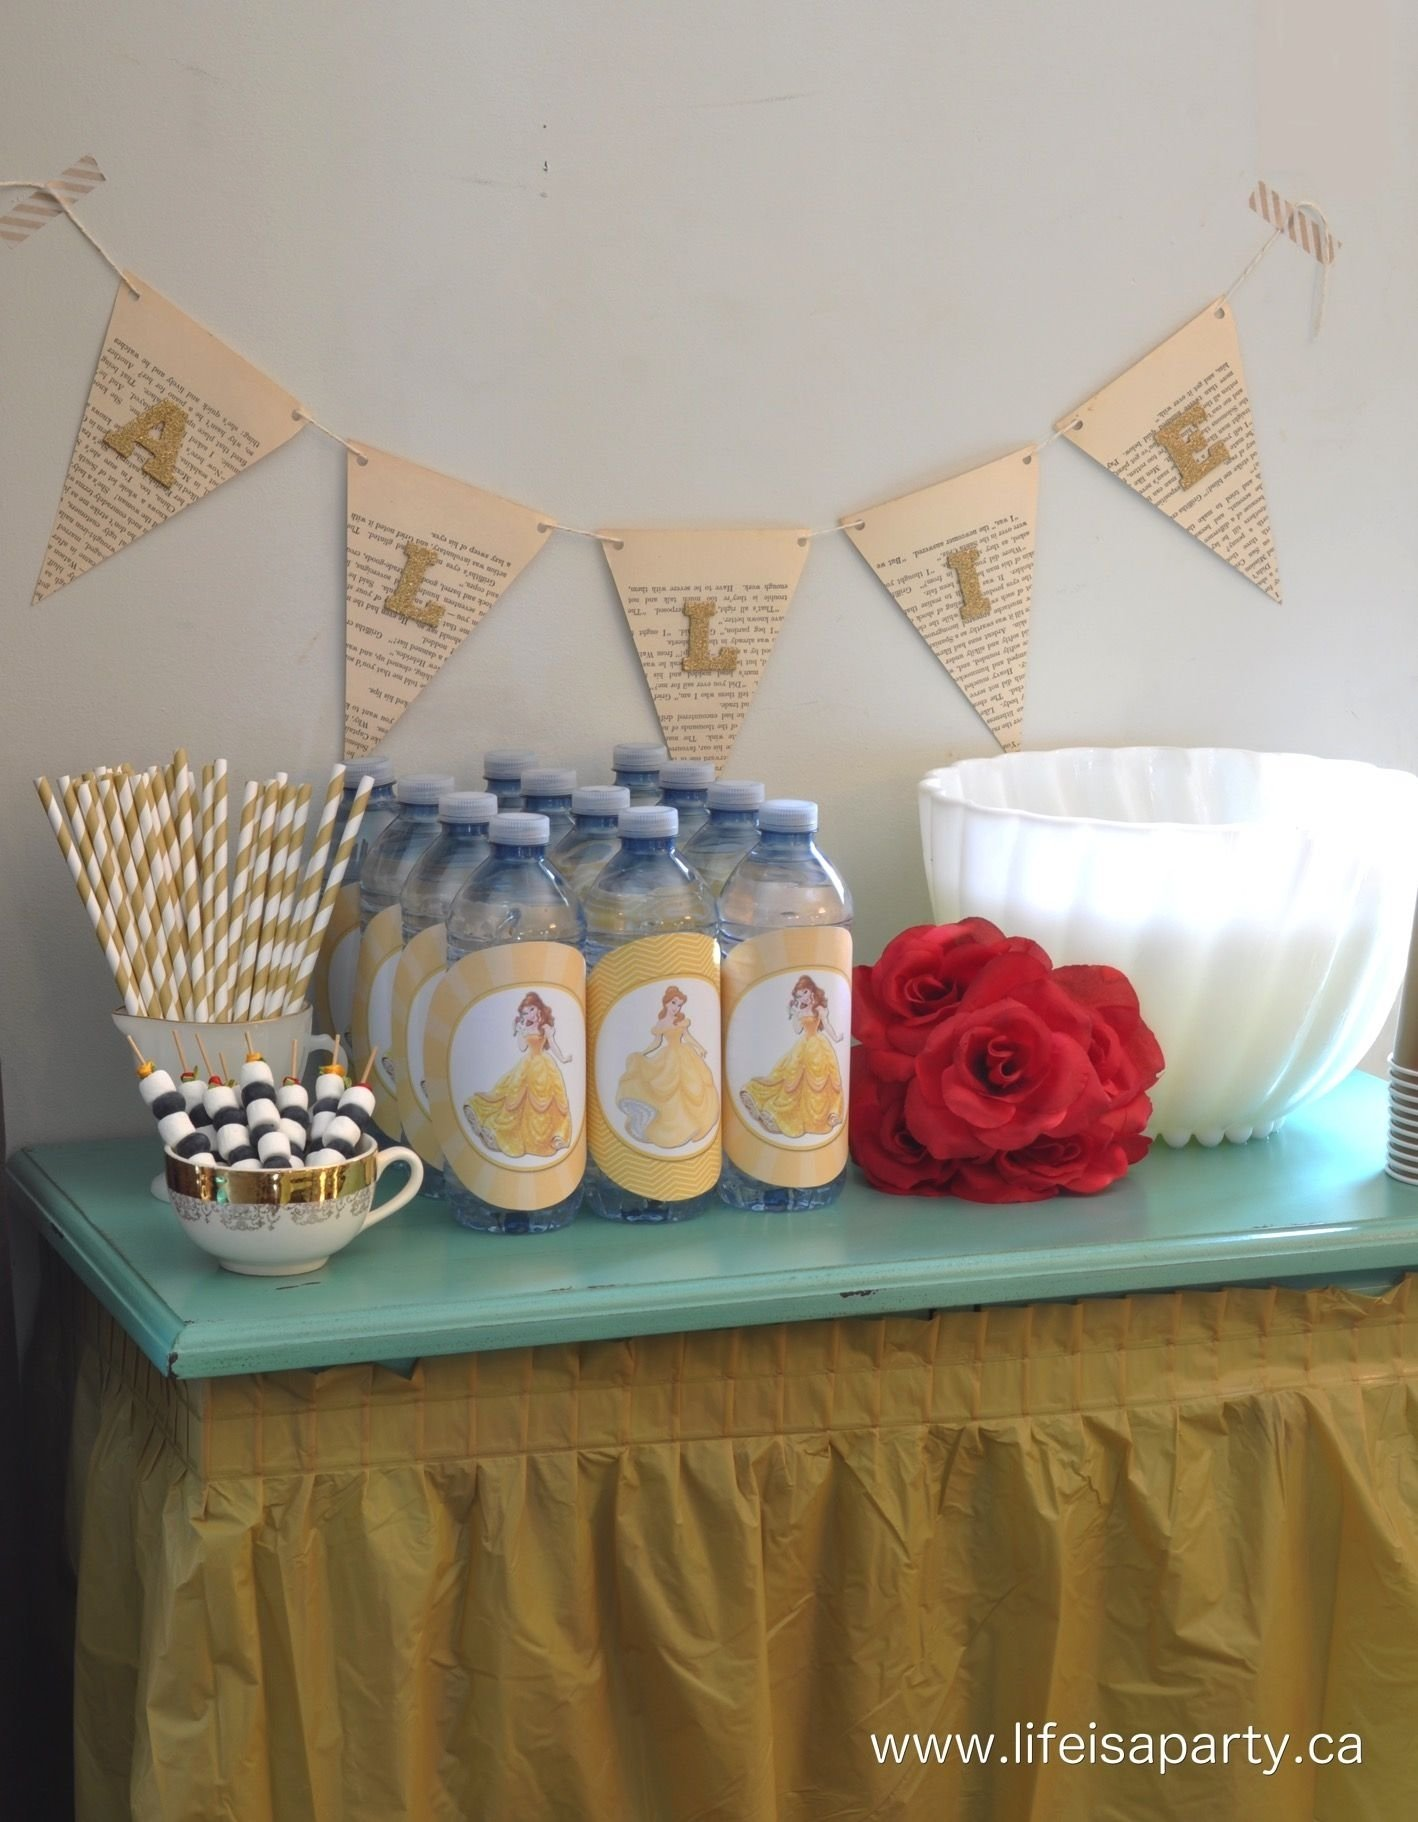 10 Great Beauty And The Beast Party Ideas beauty and the beast party an amazing beauty and the beast themed 1 2021